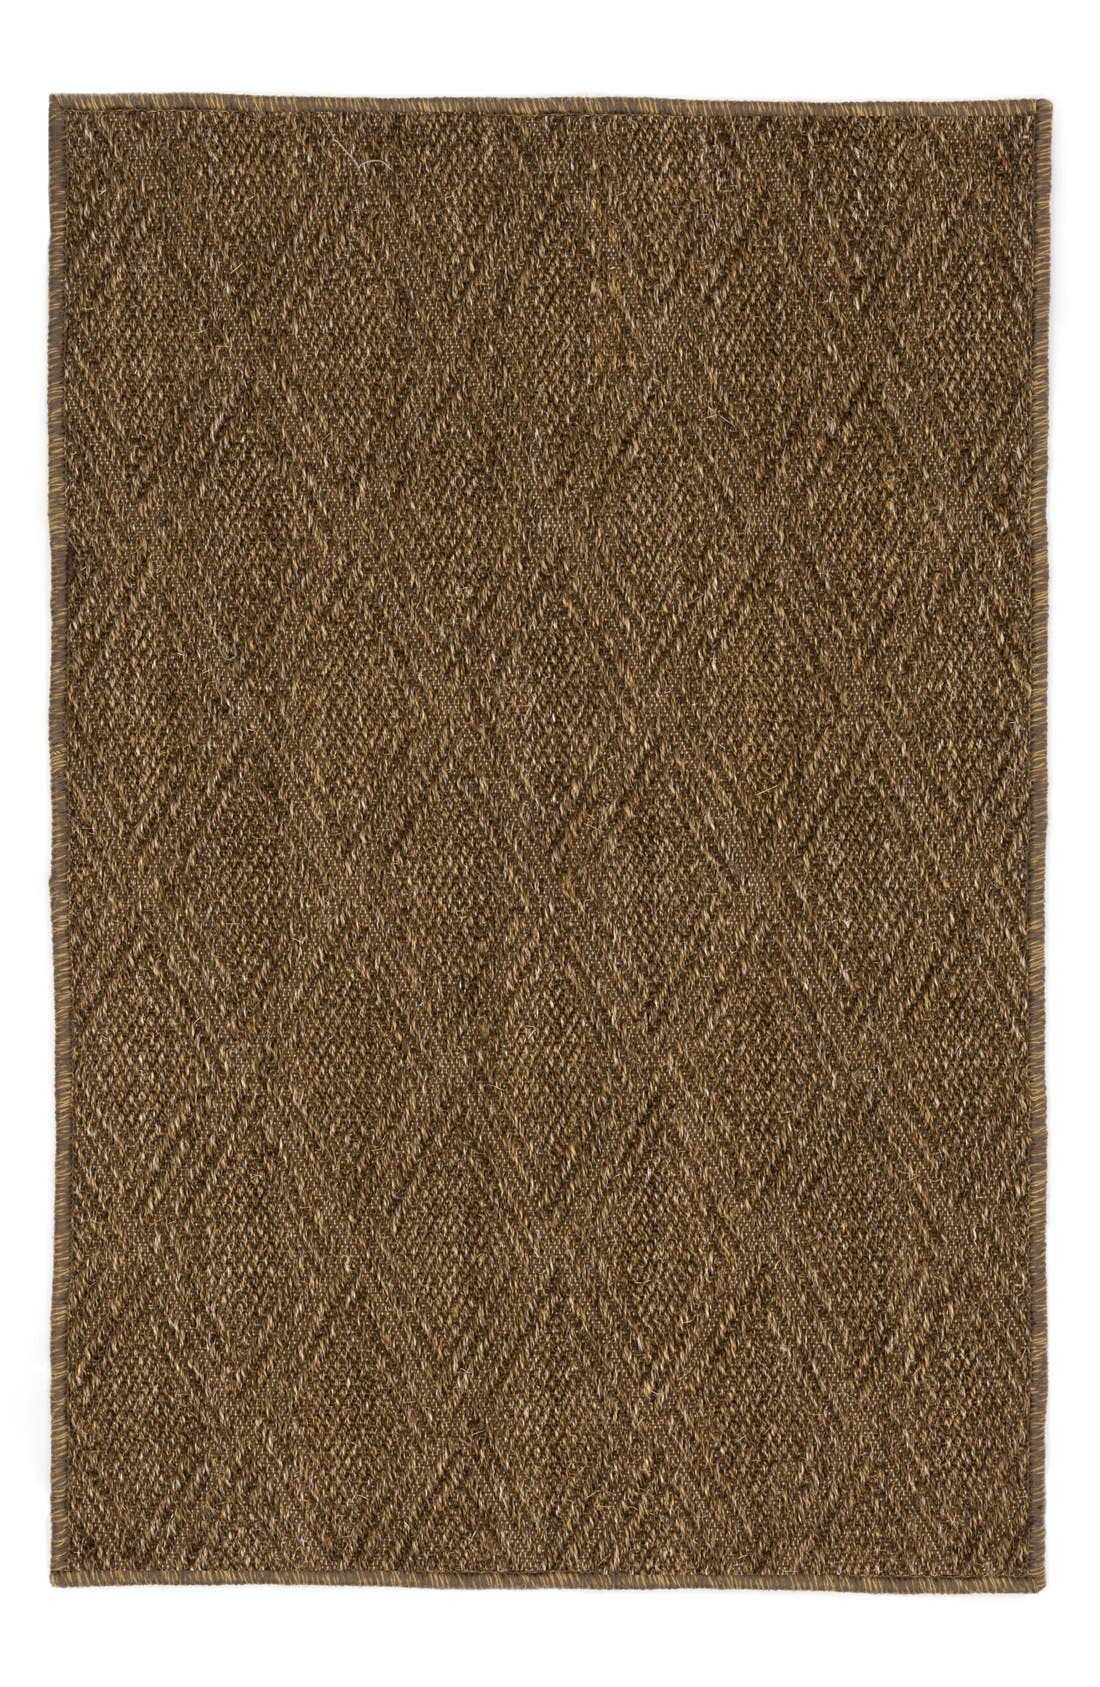 'Diamond Sisal' Rug,                             Main thumbnail 1, color,                             200